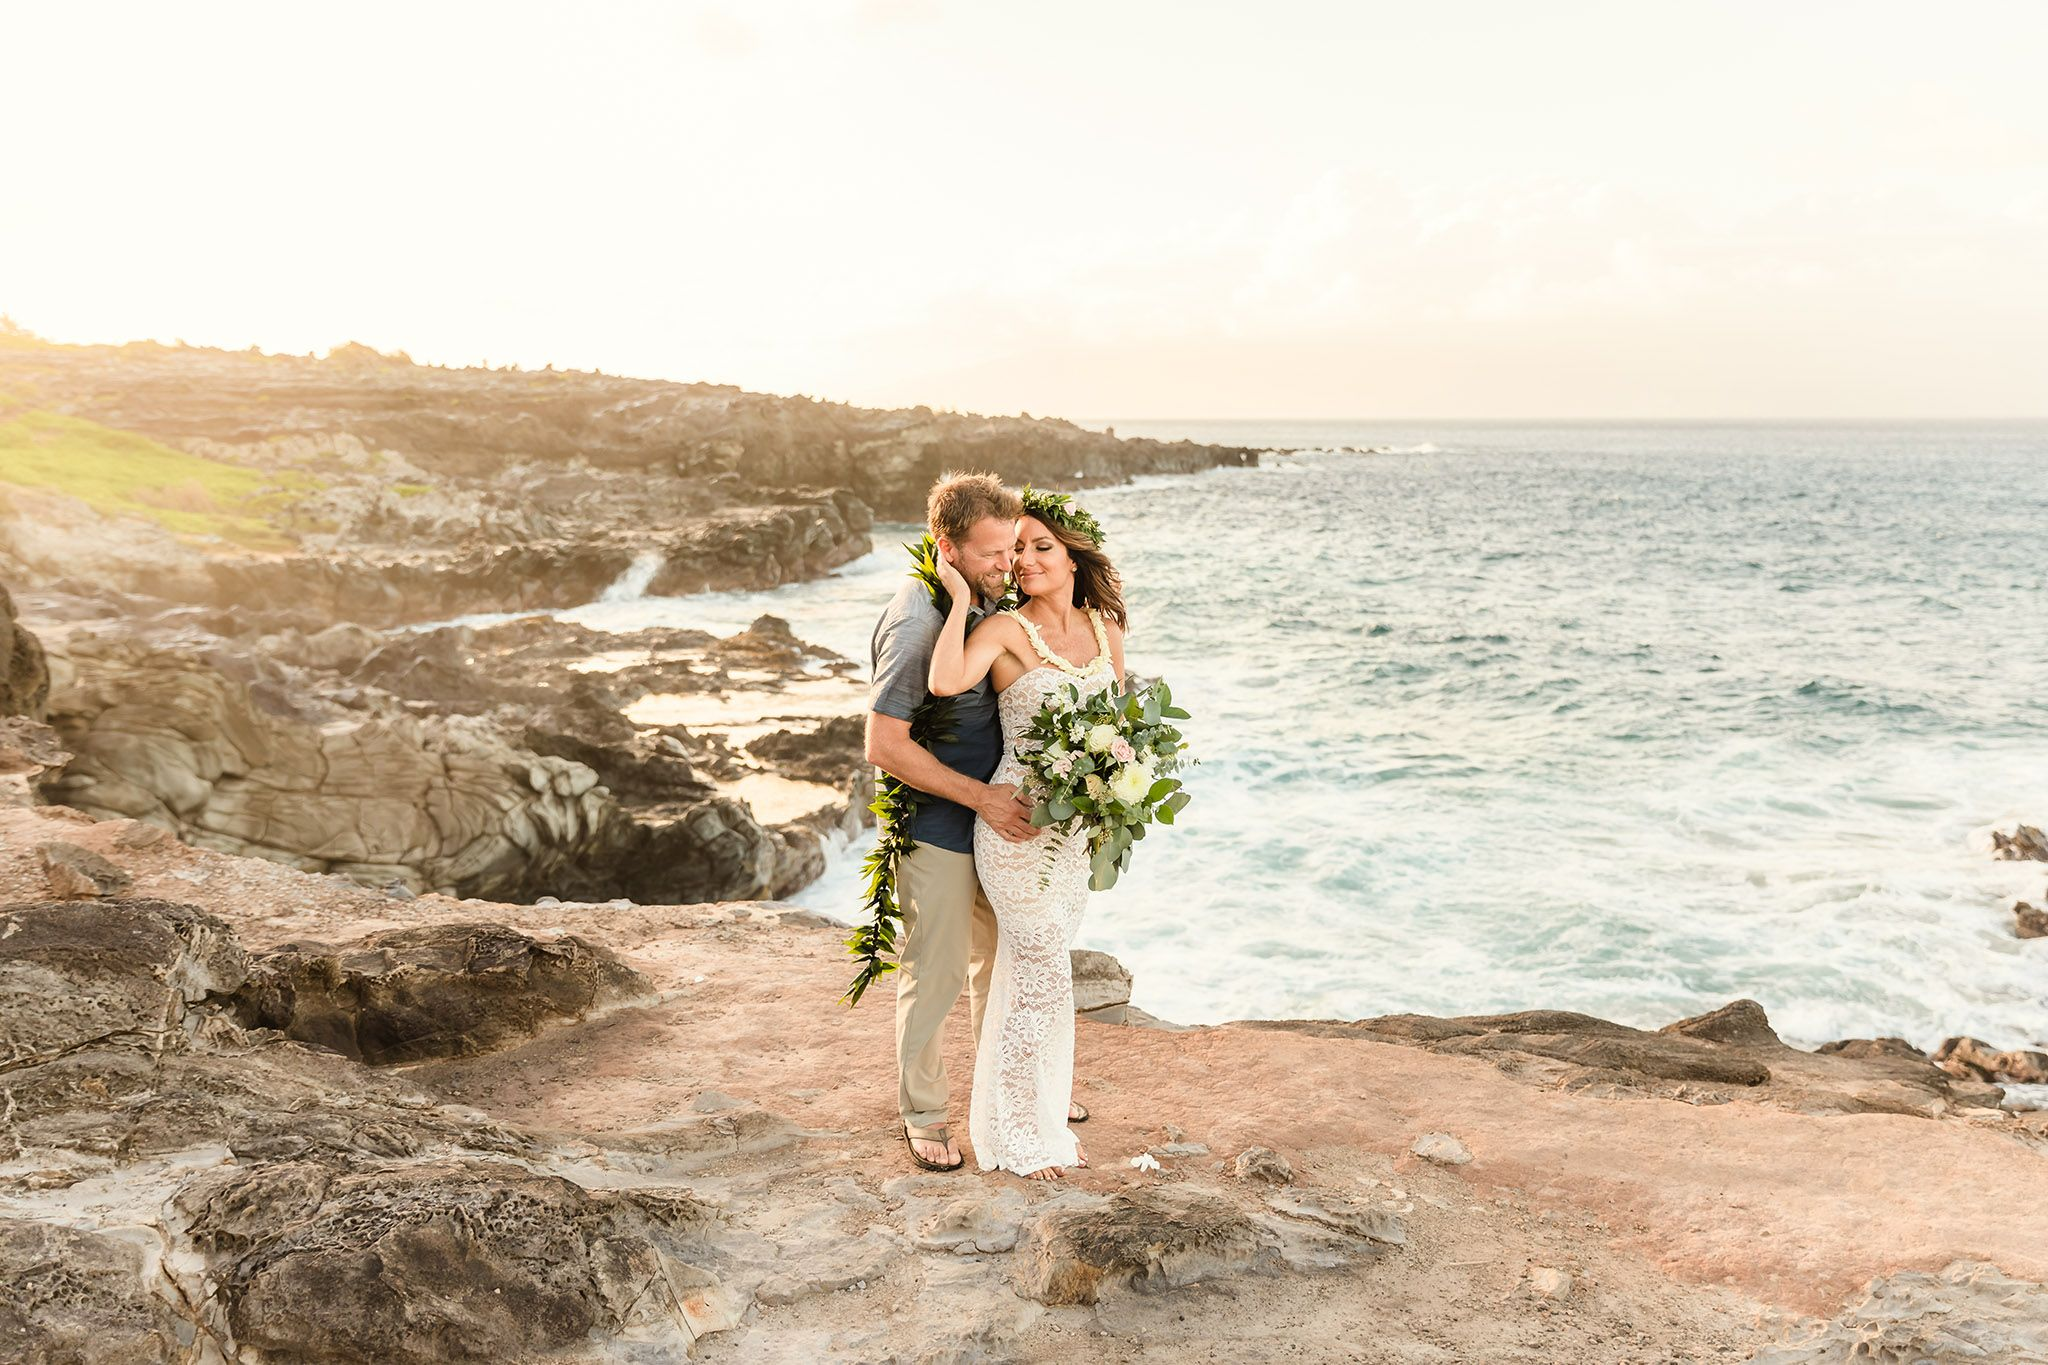 romantic wedding portraits maui hawaii